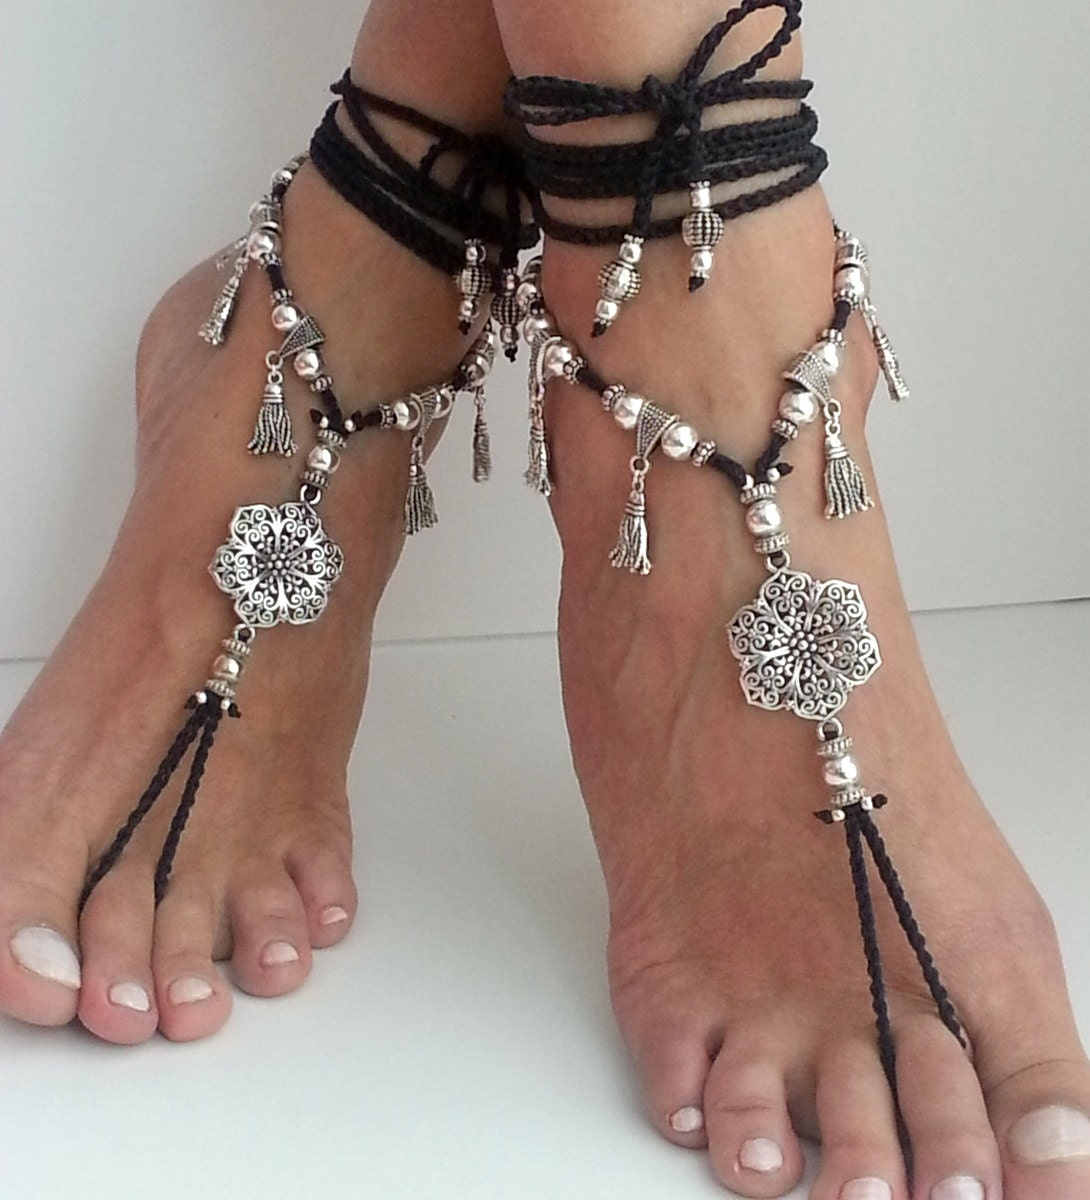 Belly Dance Shoes Uk